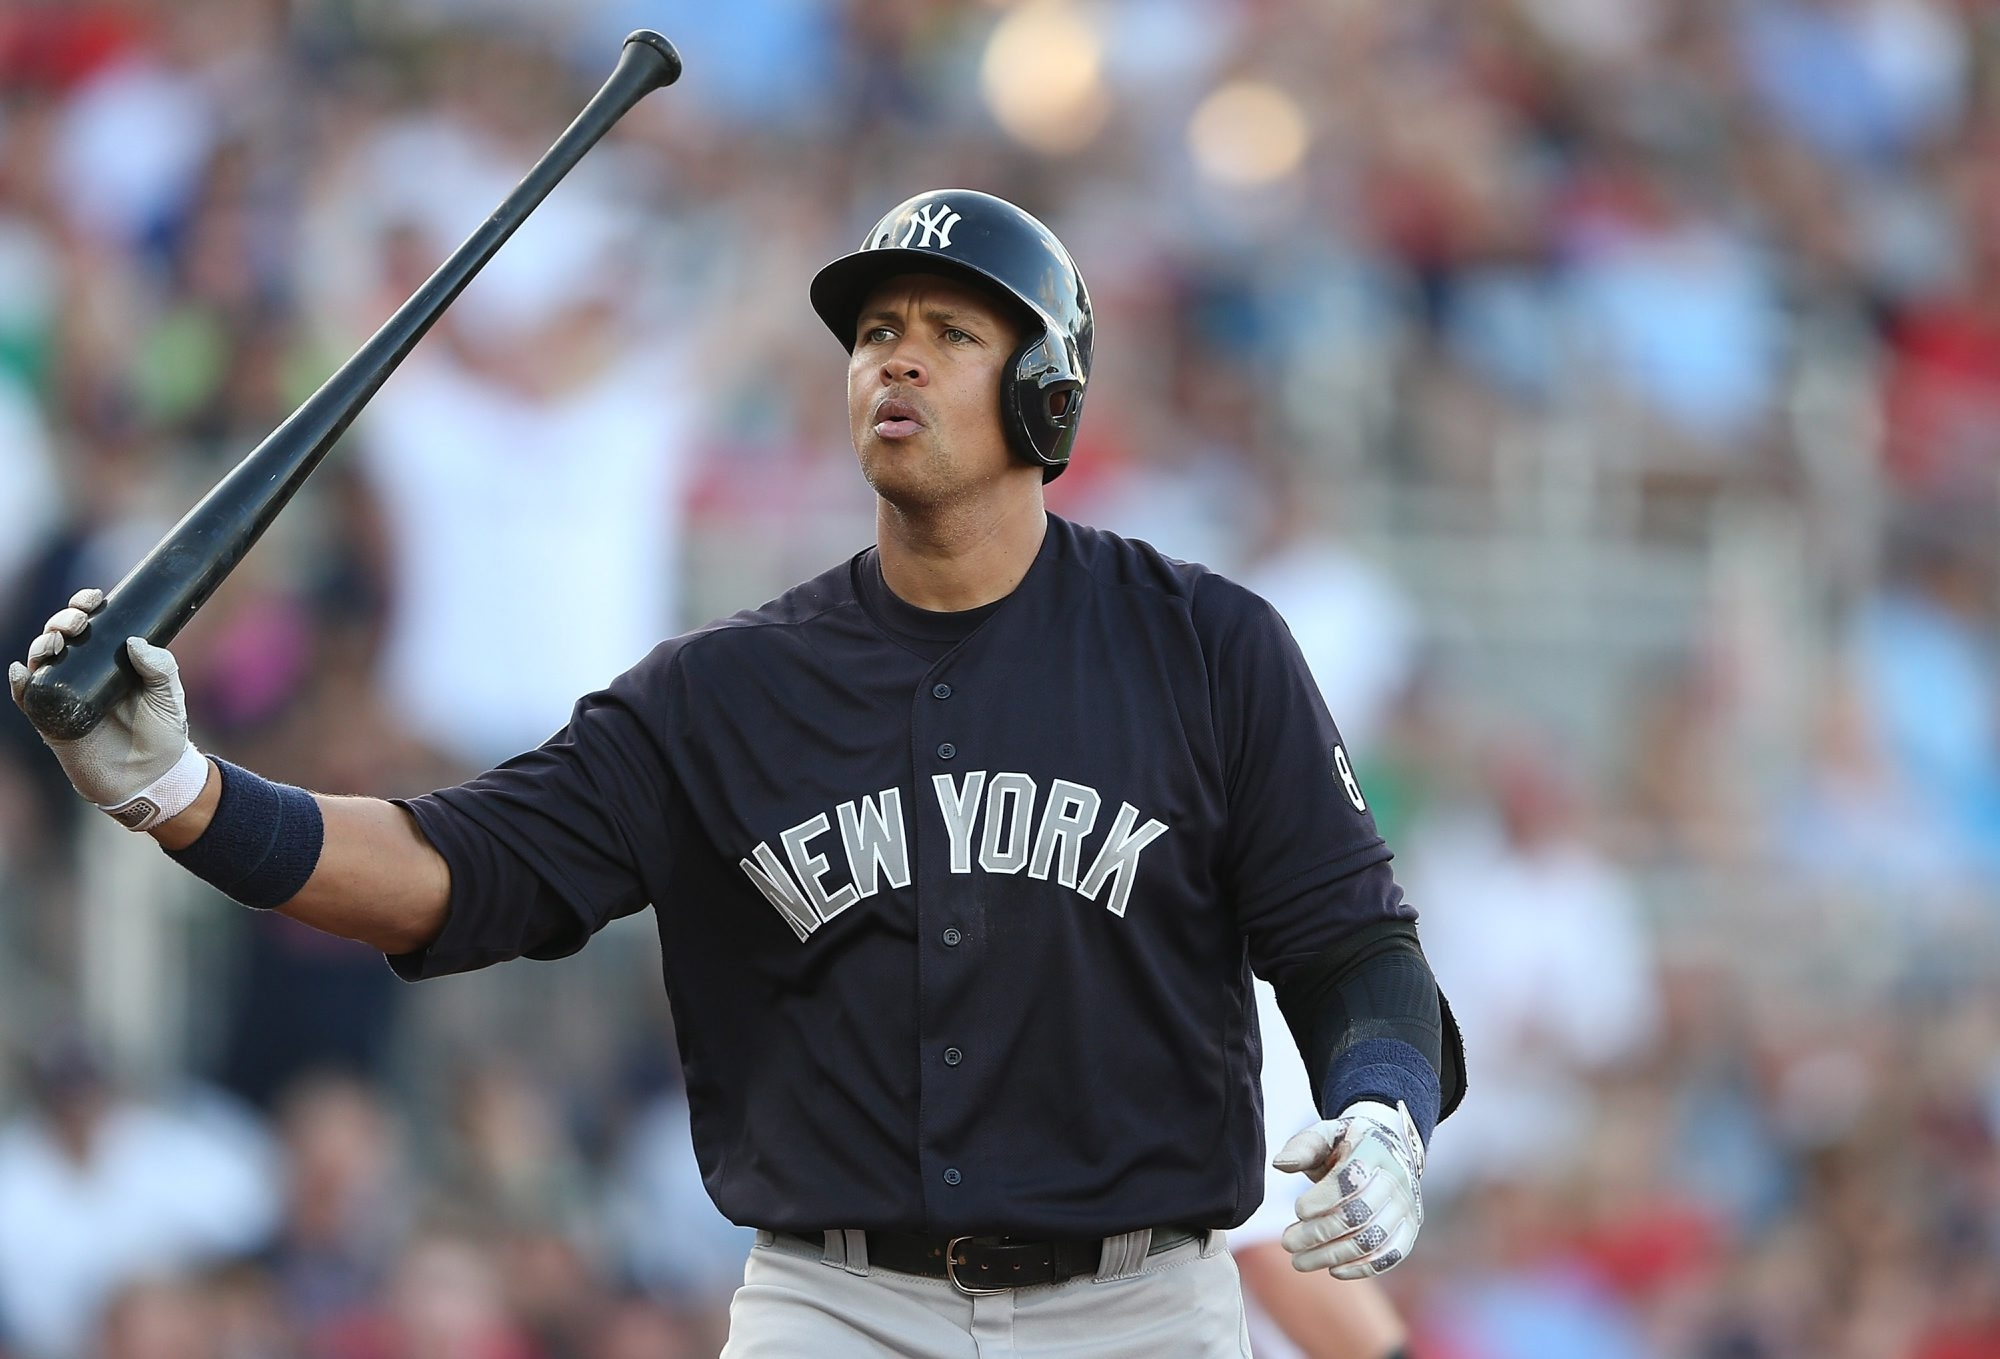 Alex Rodriguez reacts after striking out in the first inning of a spring training game against the Boston Red Sox on March 15. (Getty Images)